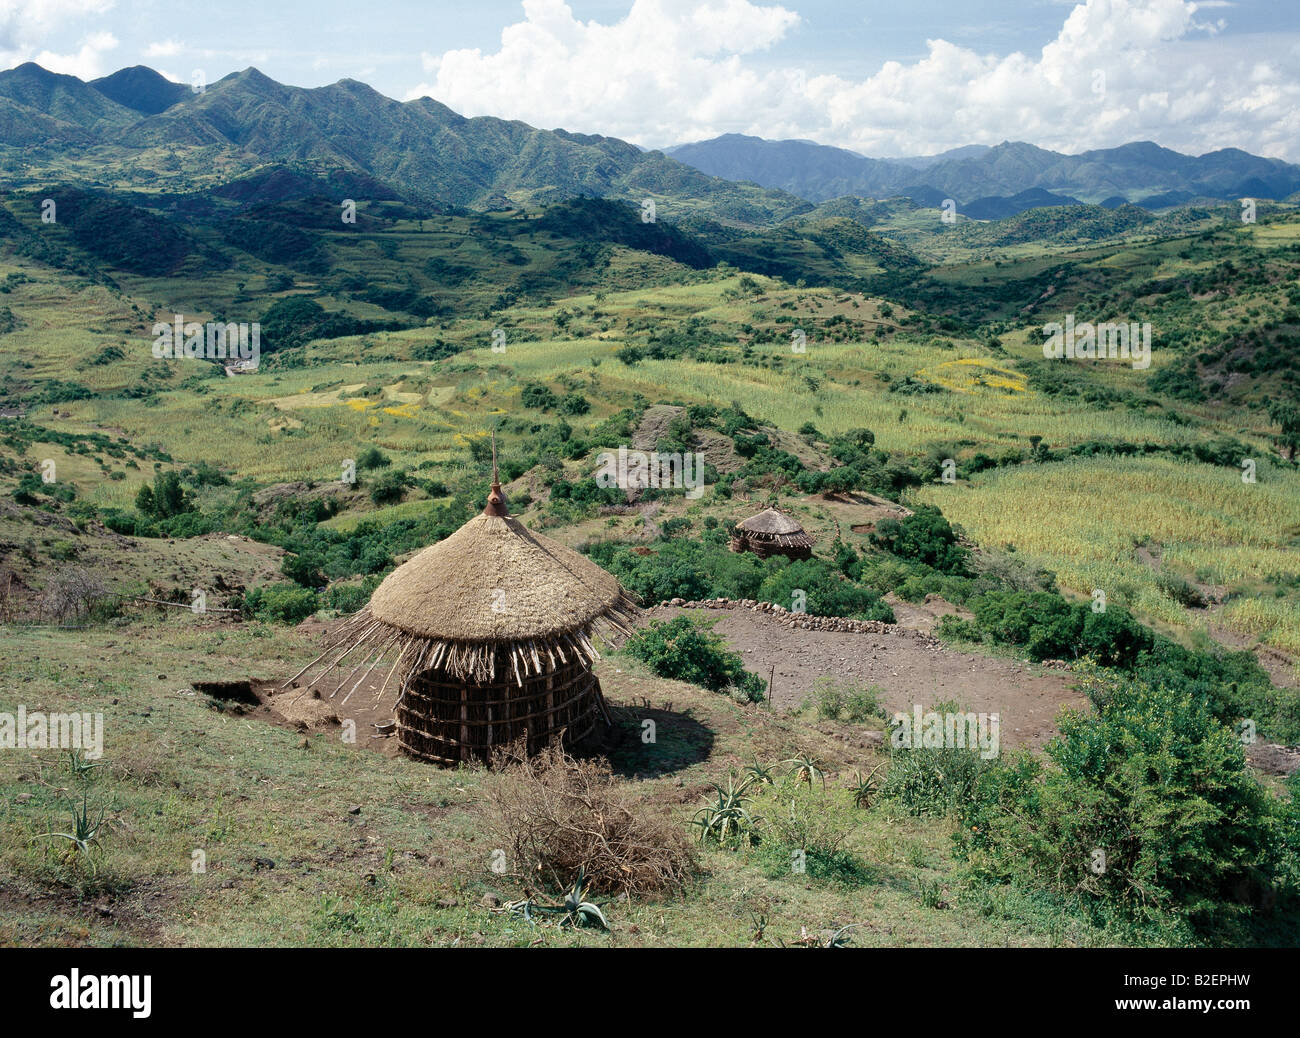 Scenery between Desse and Bati in the Welo Province of northern Ethiopia with an unfinished thatched house in the - Stock Image